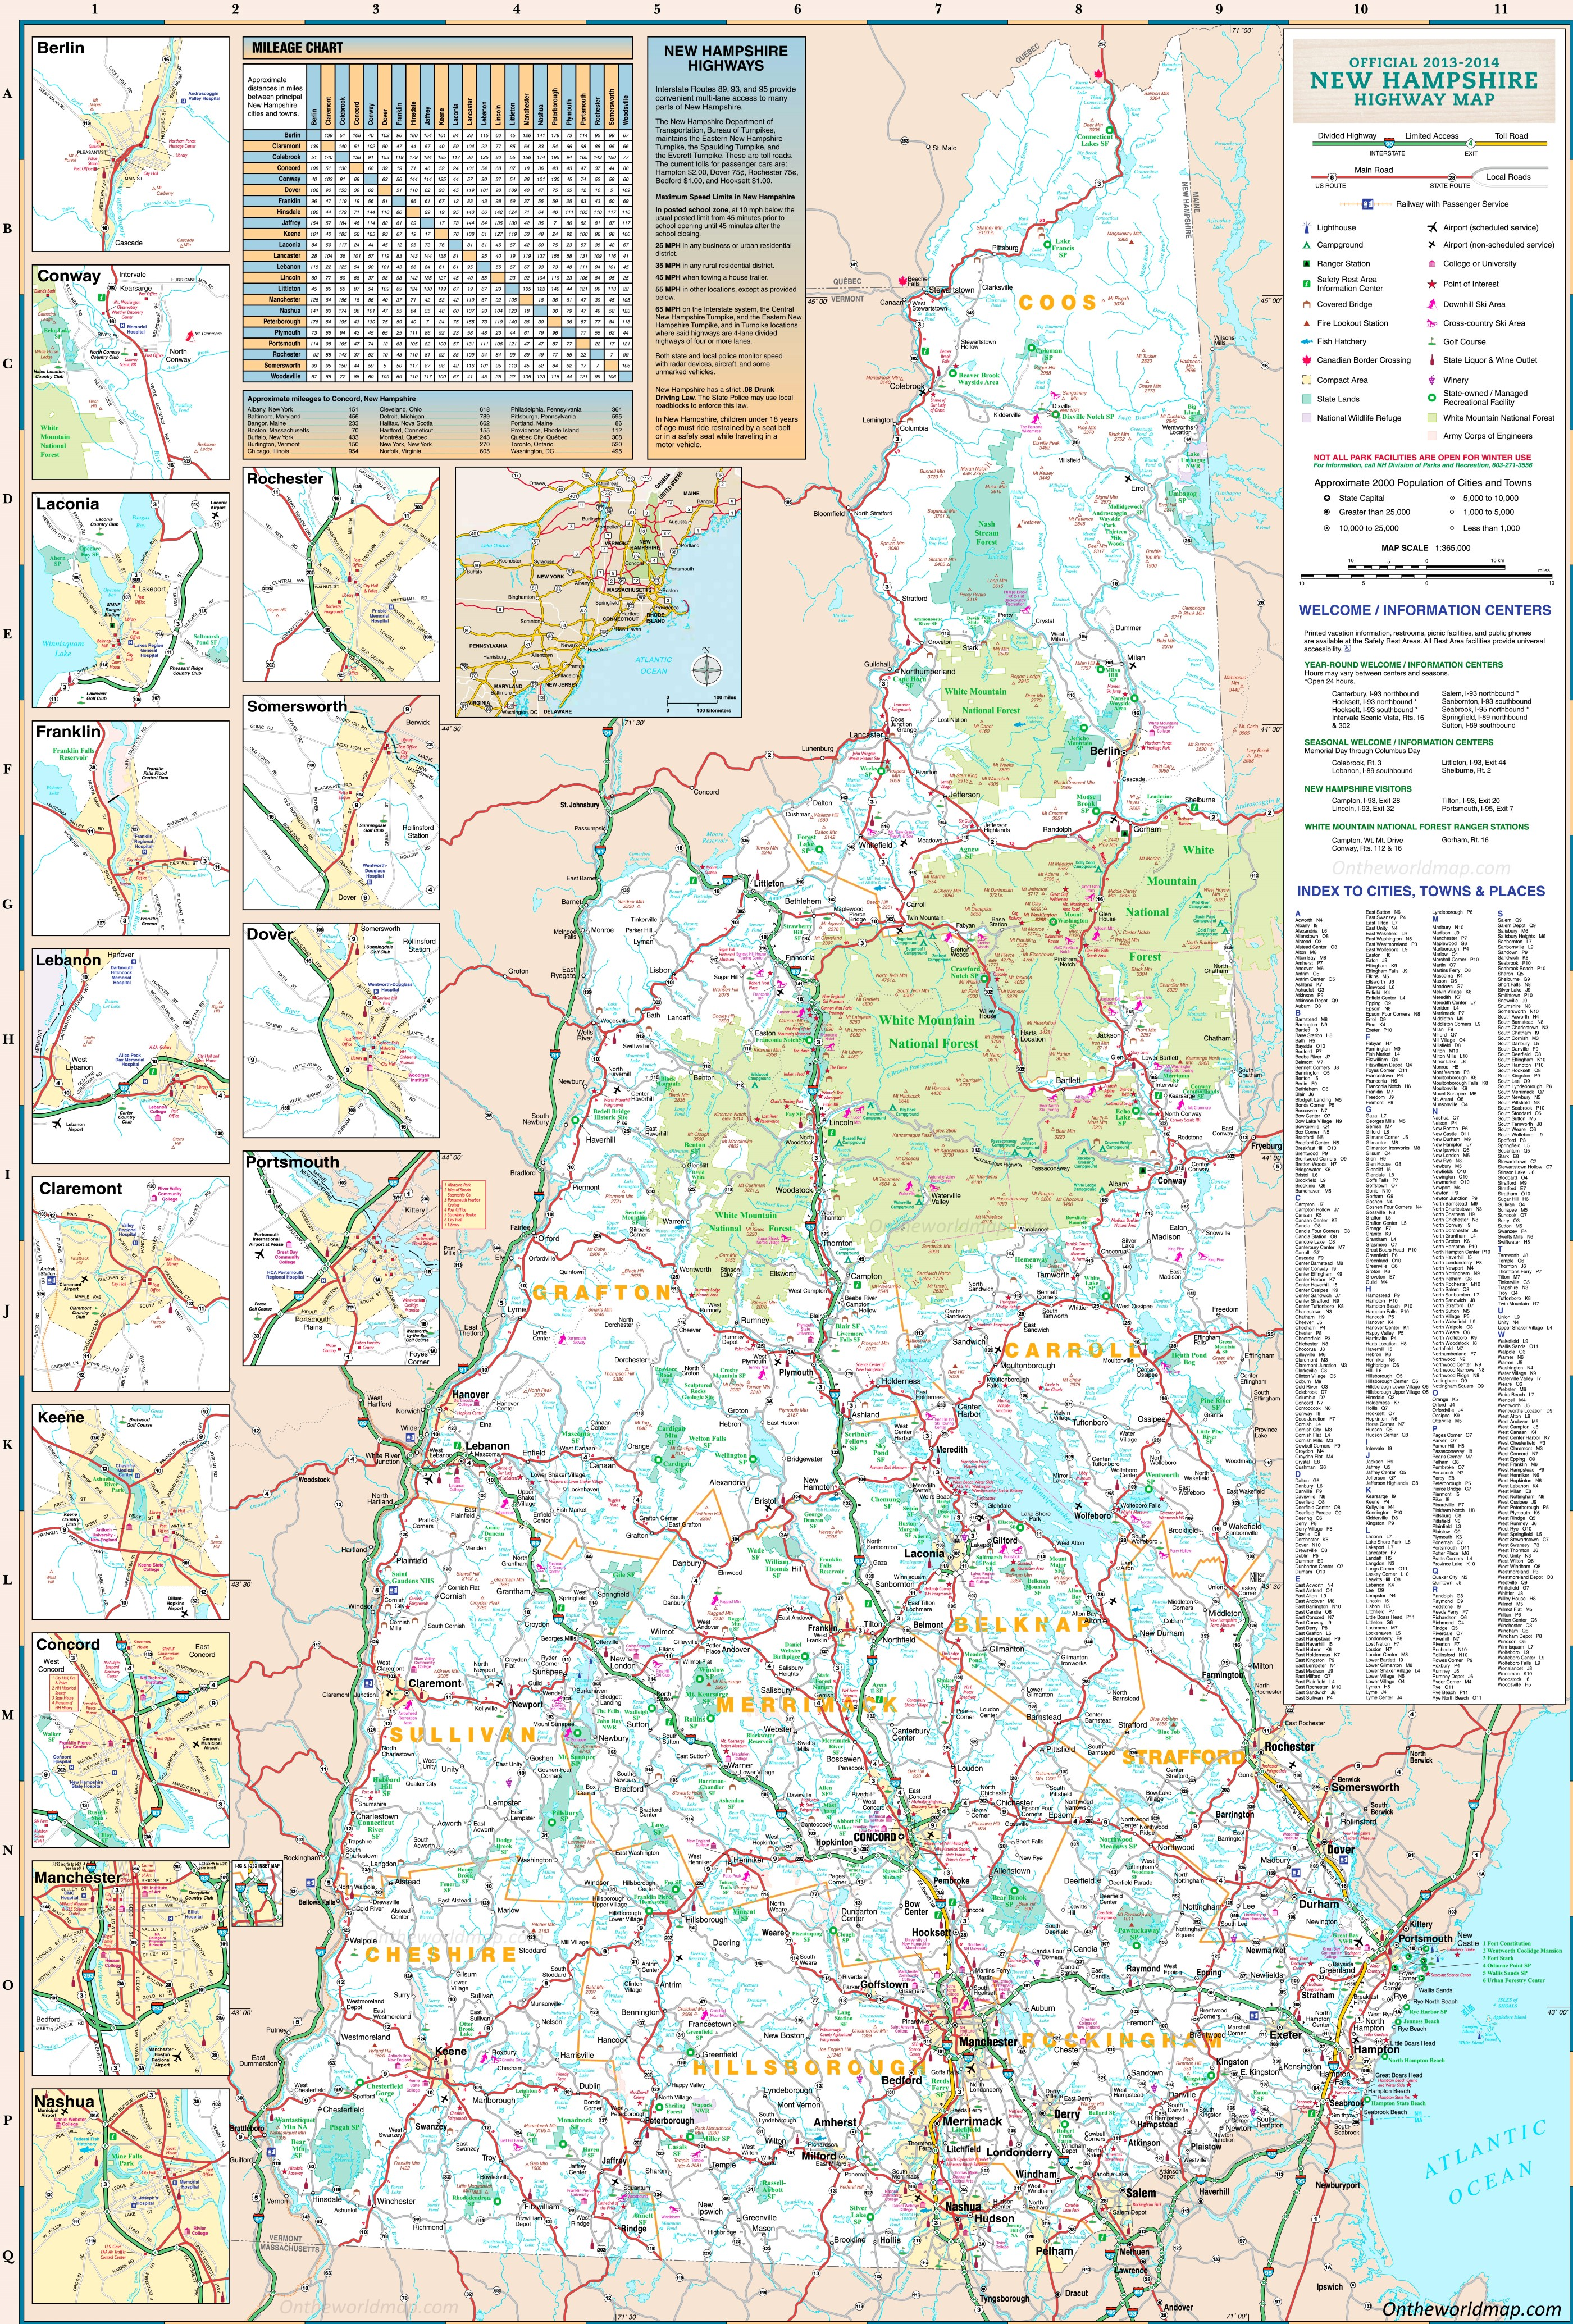 Map Of New Hampshire Towns Large detailed tourist map of New Hampshire with cities and towns